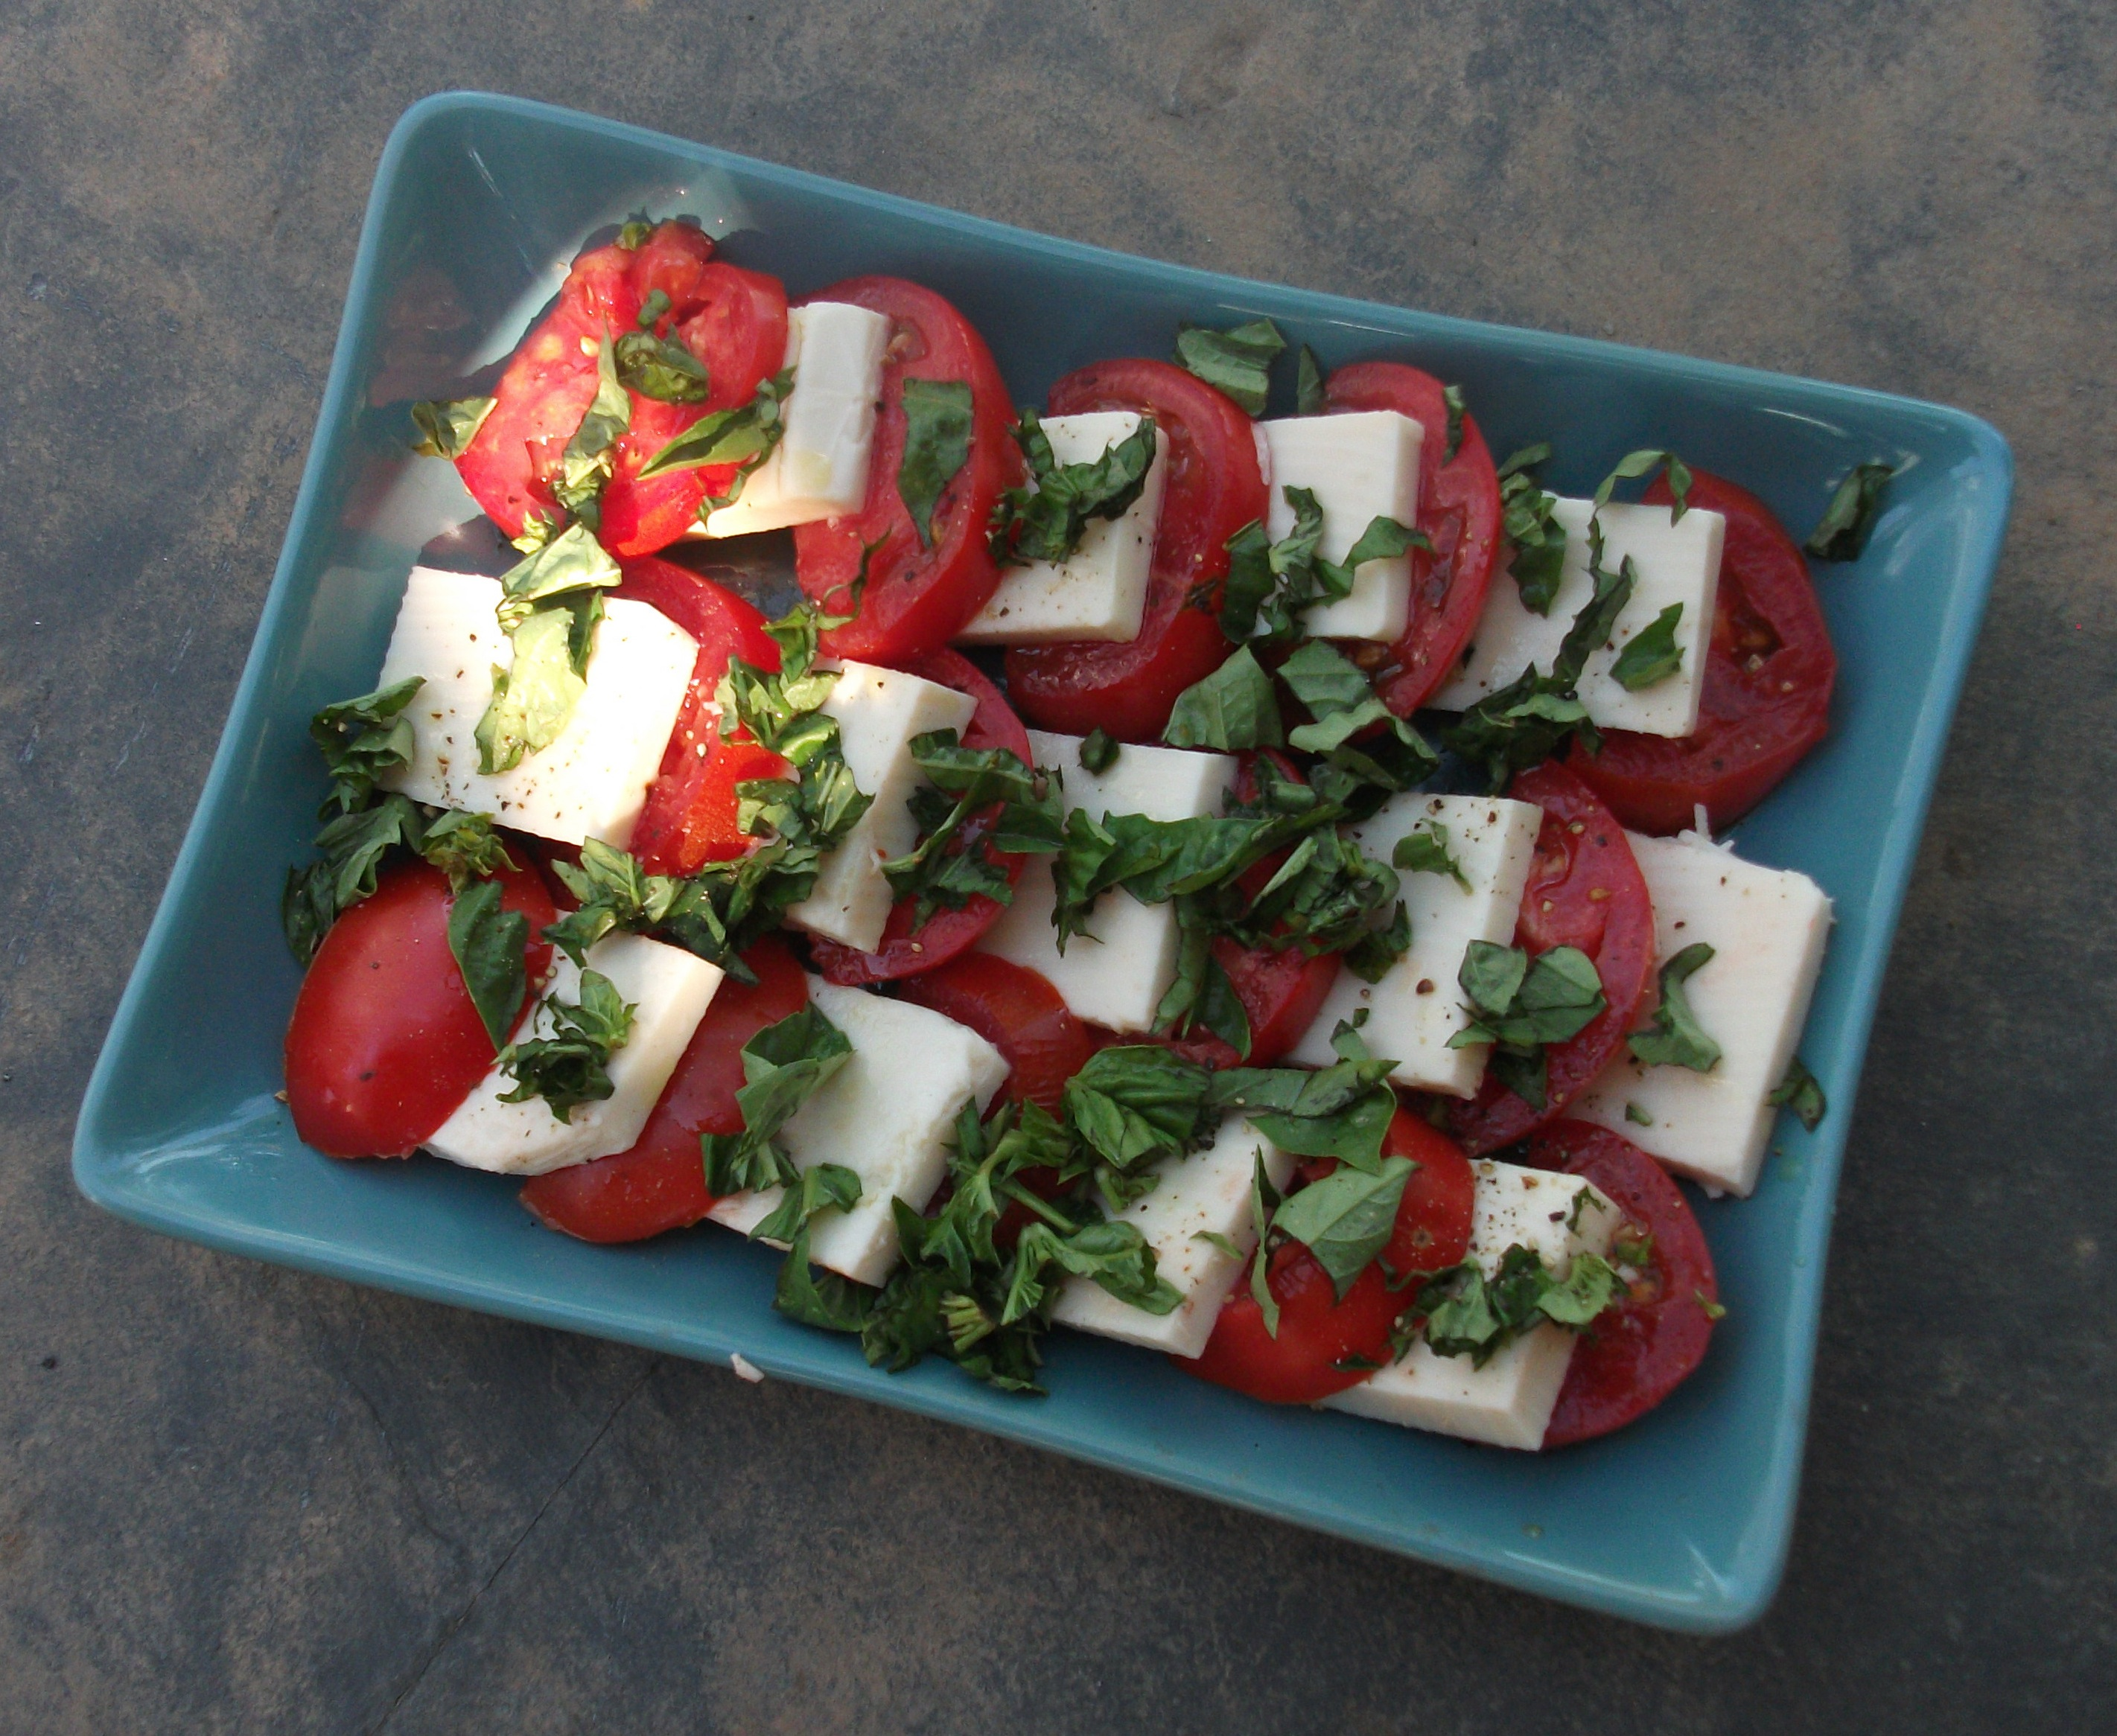 Vegan Caprese Salad (Tomatoes, Mozzarella and Basil)